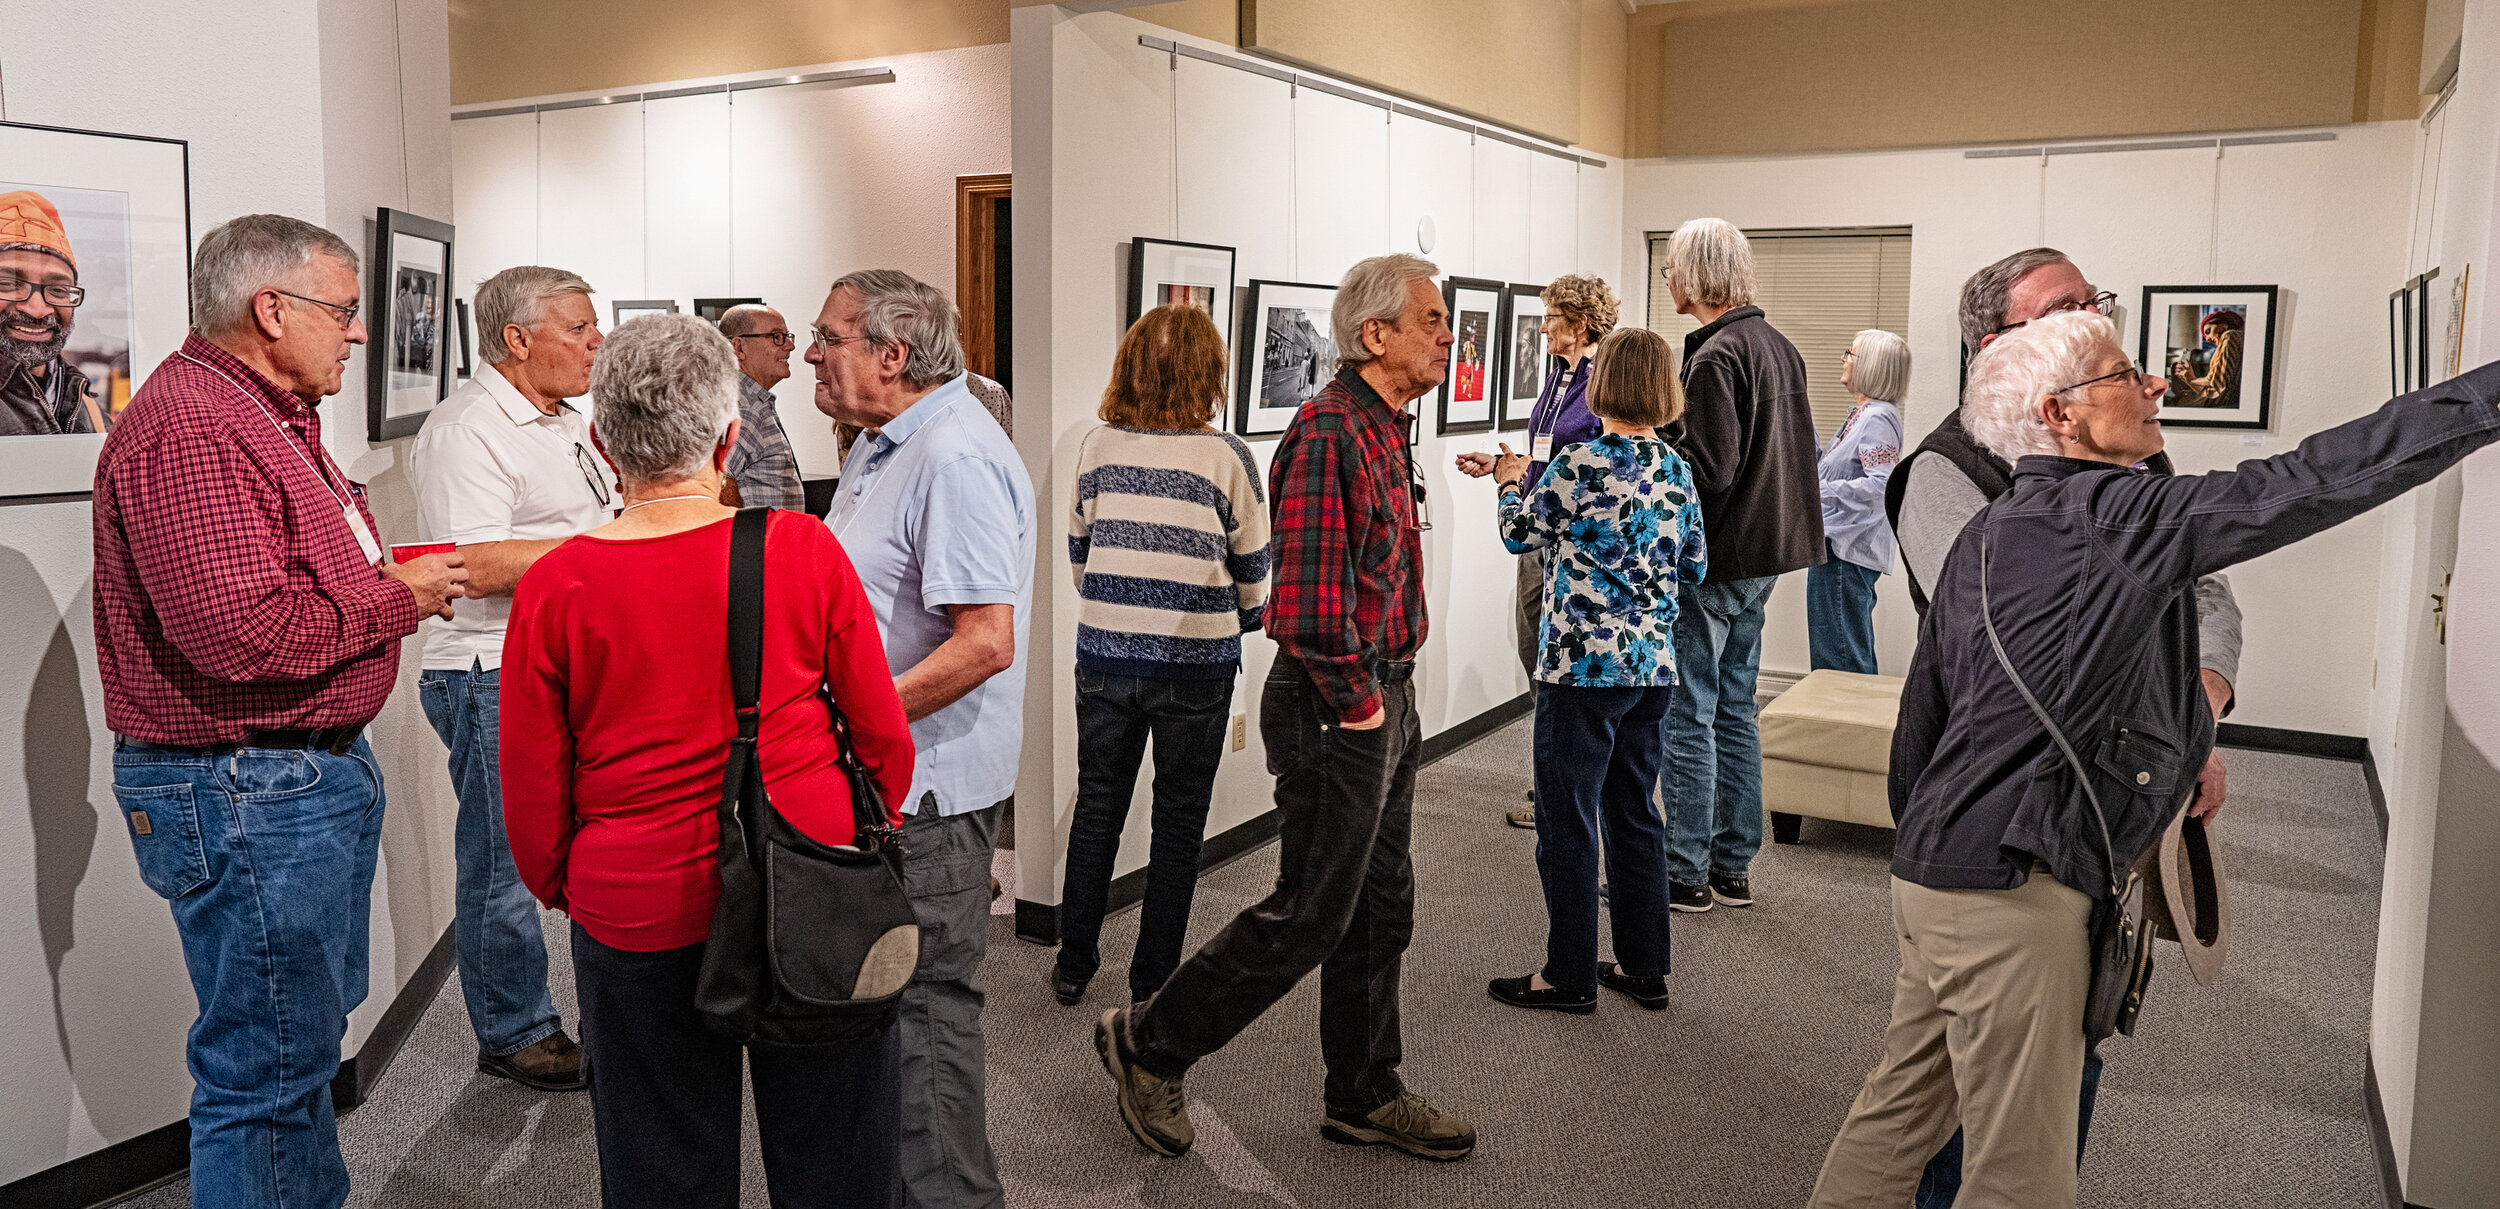 Featured Photographer Opening Night for Human Interest Group. By Mark Golbach, all rights reserved.